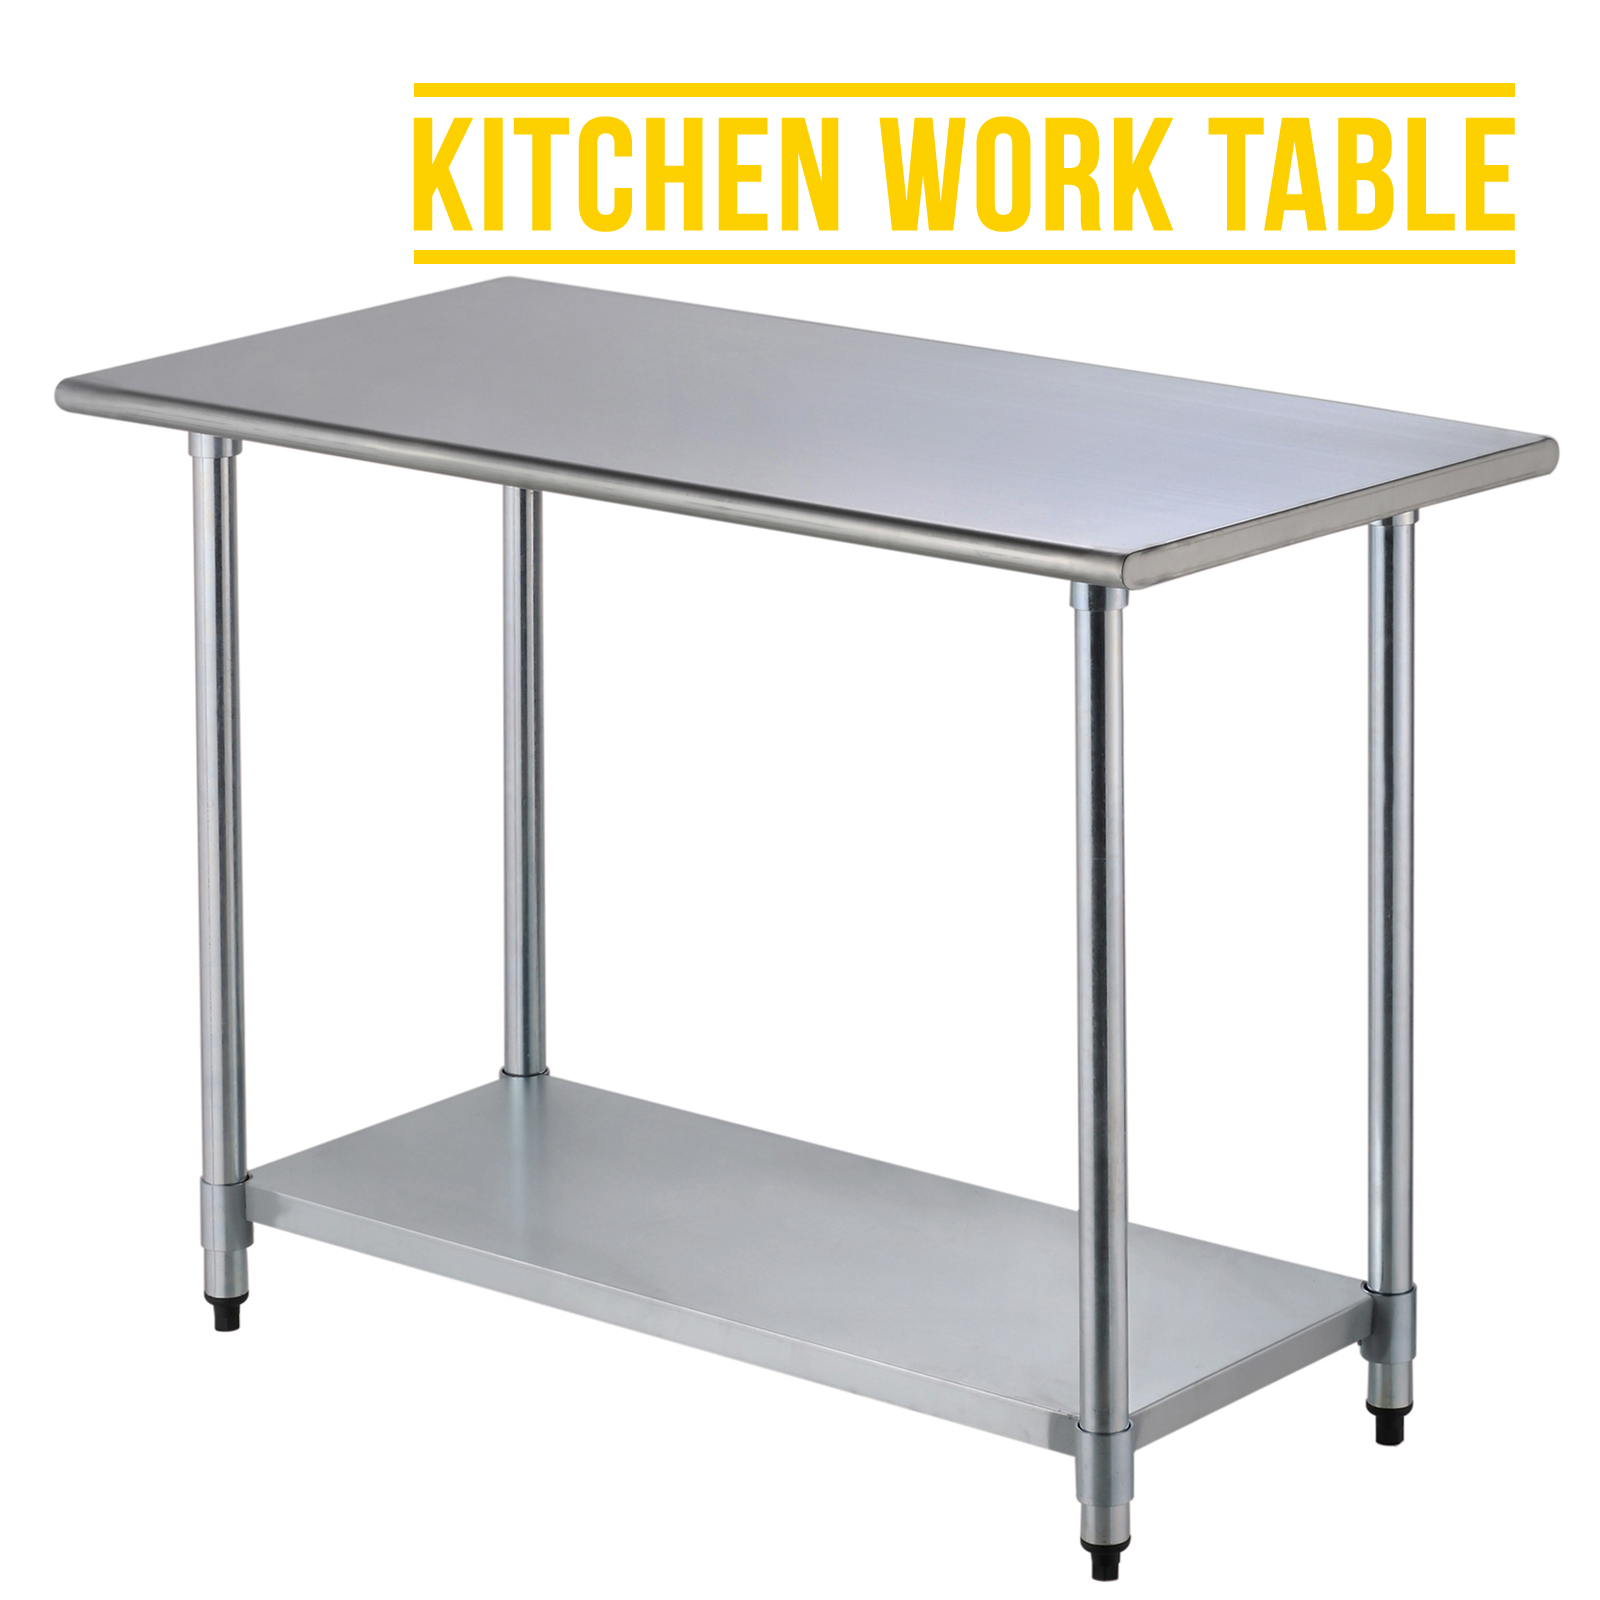 Superbe 2FT×4FT Commercial Stainless Steel Kitchen Work Prep Table Without  Backsplash